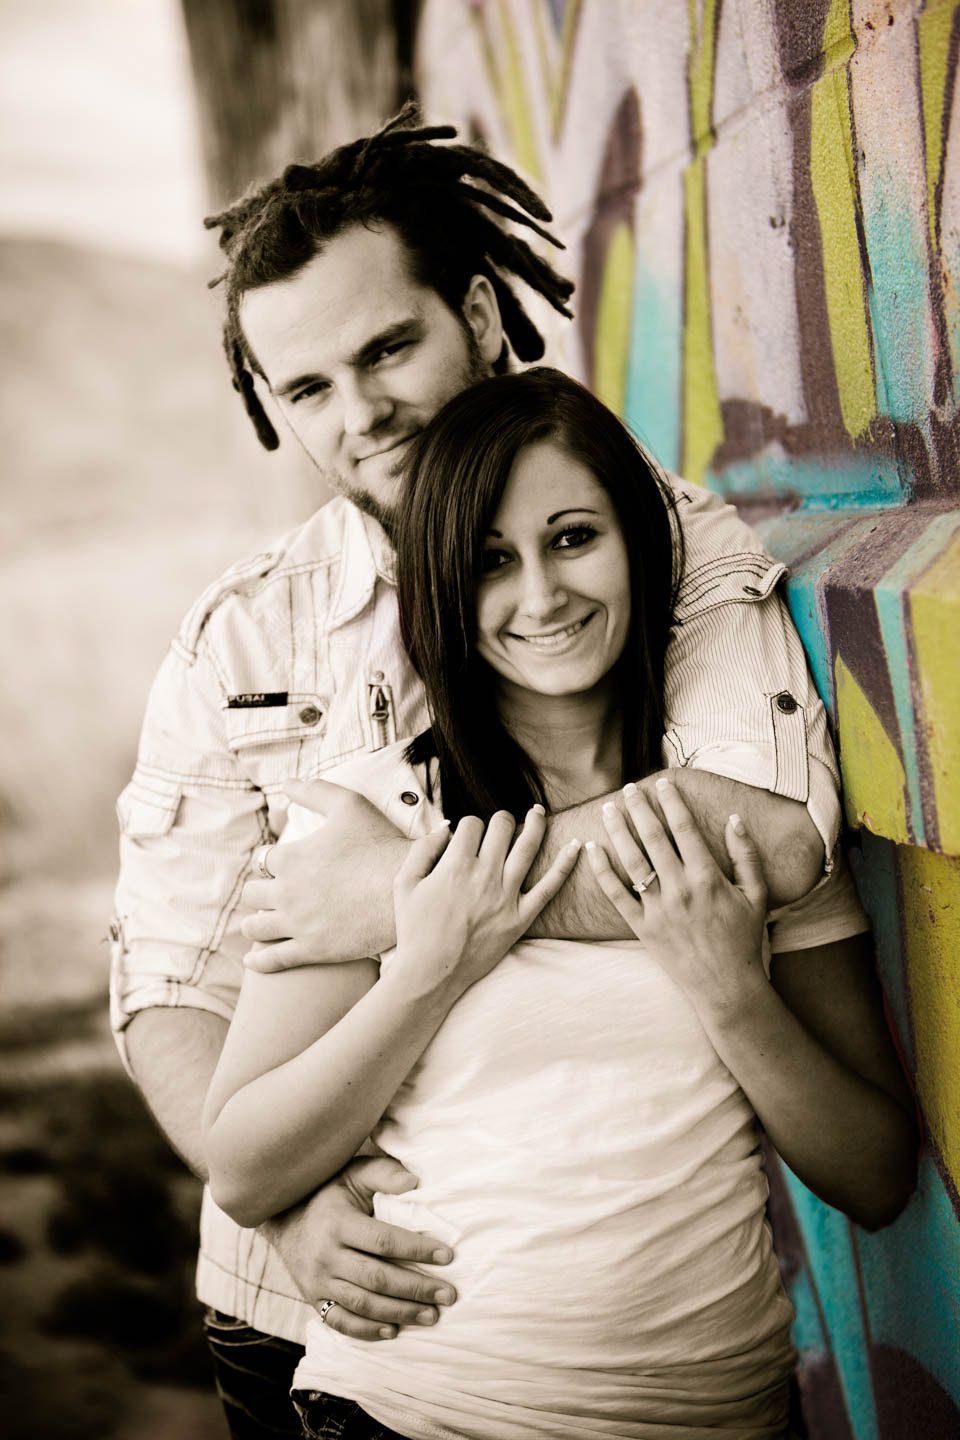 Engagement photos and graffiti